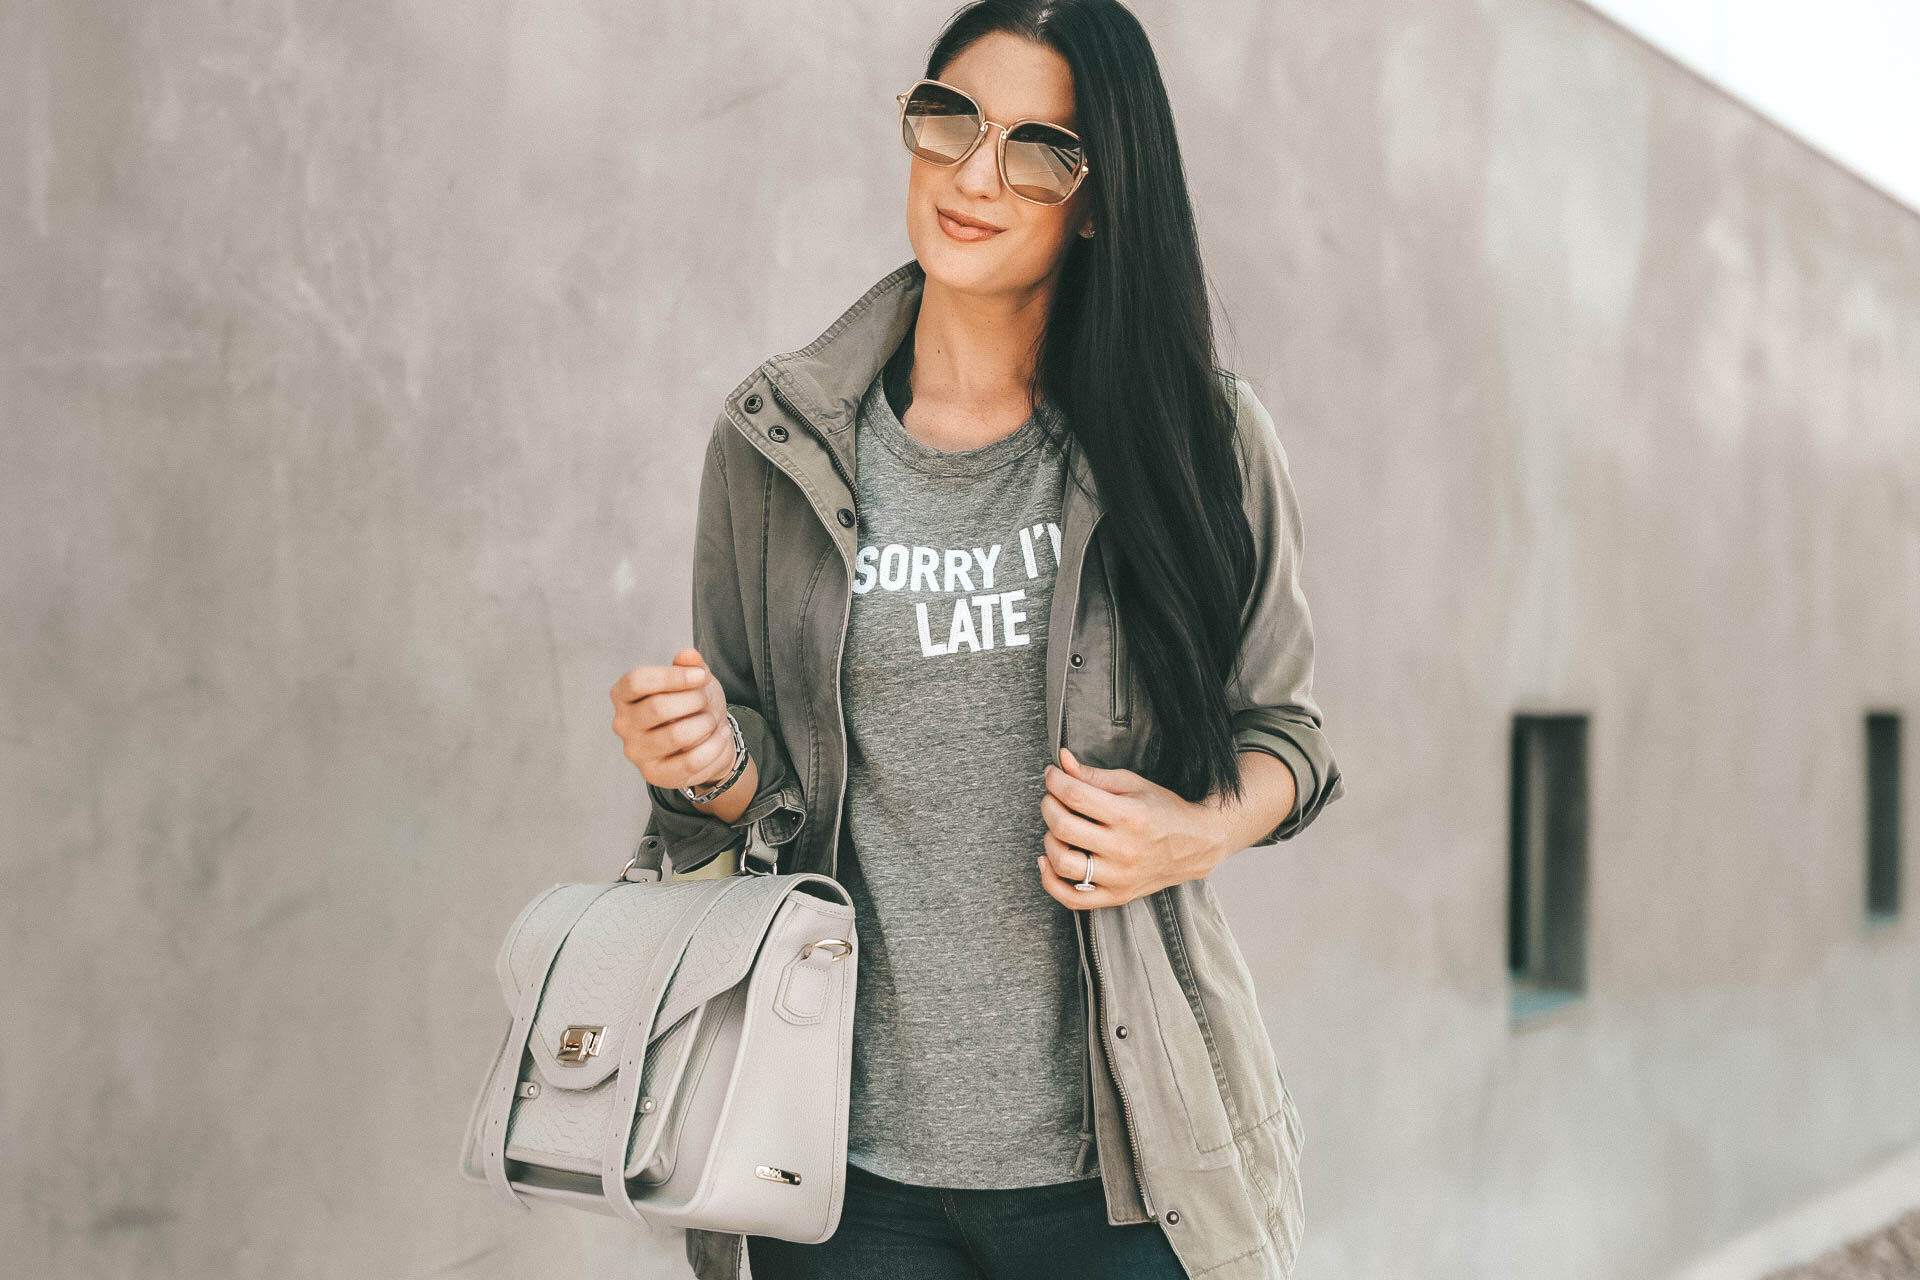 DTKAustin talks about one of her favorite new retailers at the Domain NORTHside. Marine Layer just opened and is offering a 20% discount with code DOMAINNORTHSIDE. - {Marine Layer at Domain NORTHside + 20% off Discount} featured by popular Austin fashion blogger Dressed to Kill